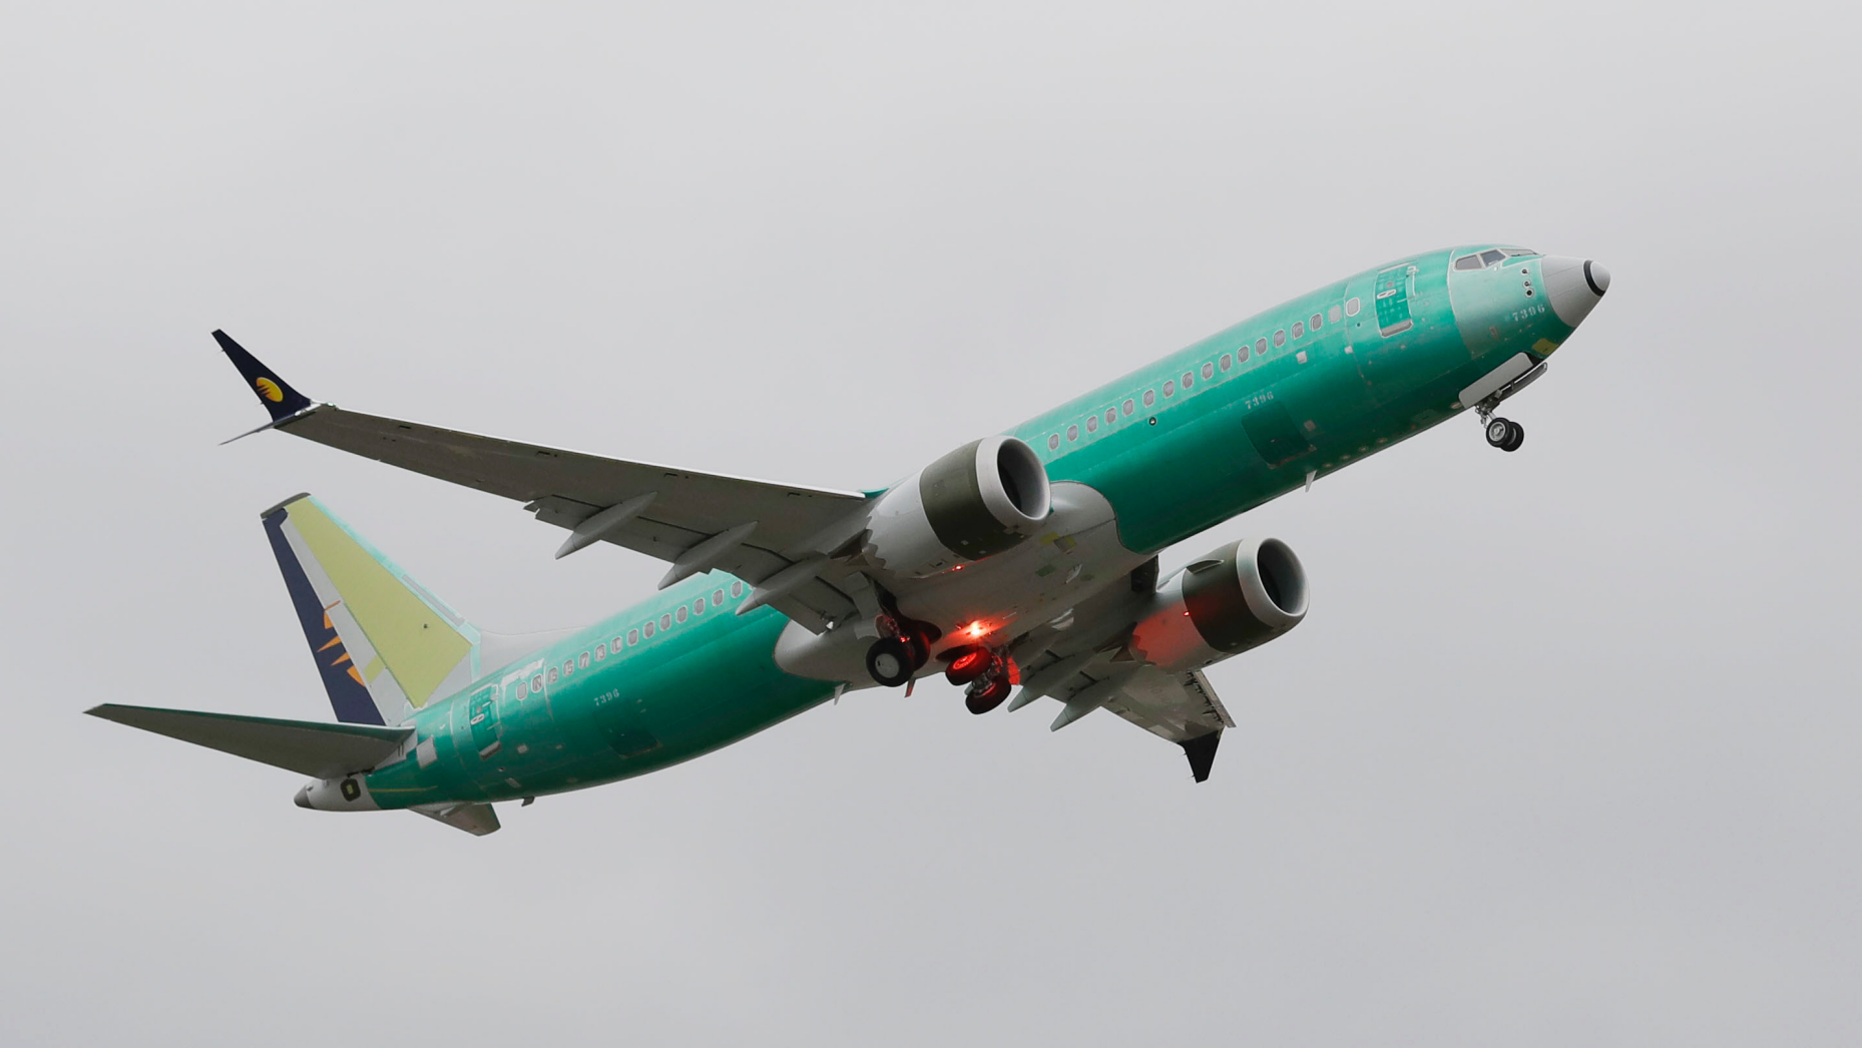 Boeing 737 Max test flights with new software are underway